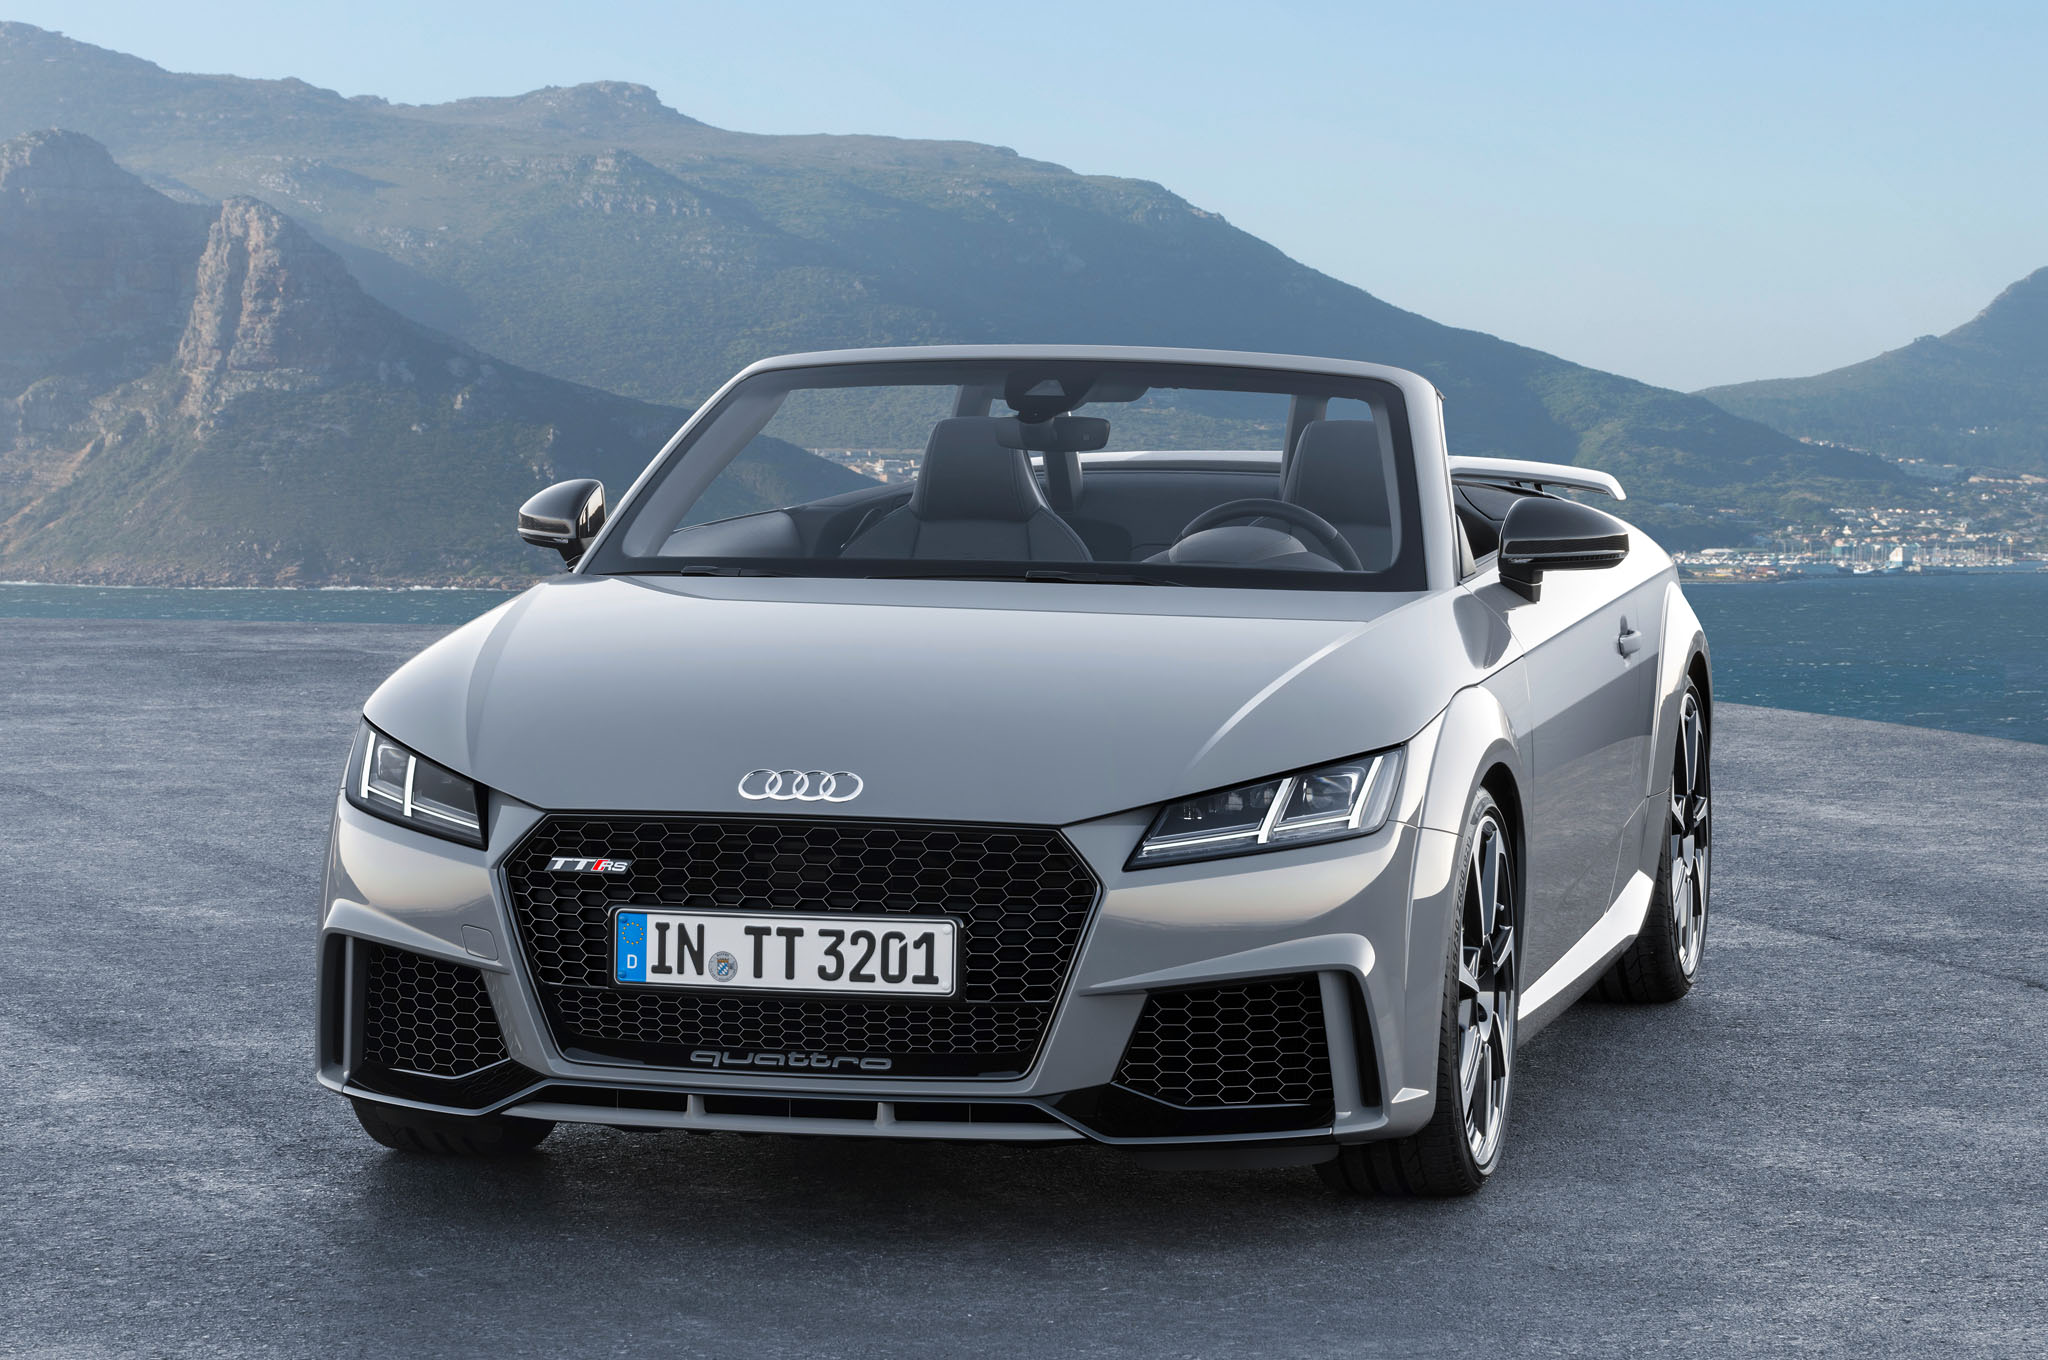 2017 Audi TT RS Convertible iPhone Wallpaper | HD Car ...